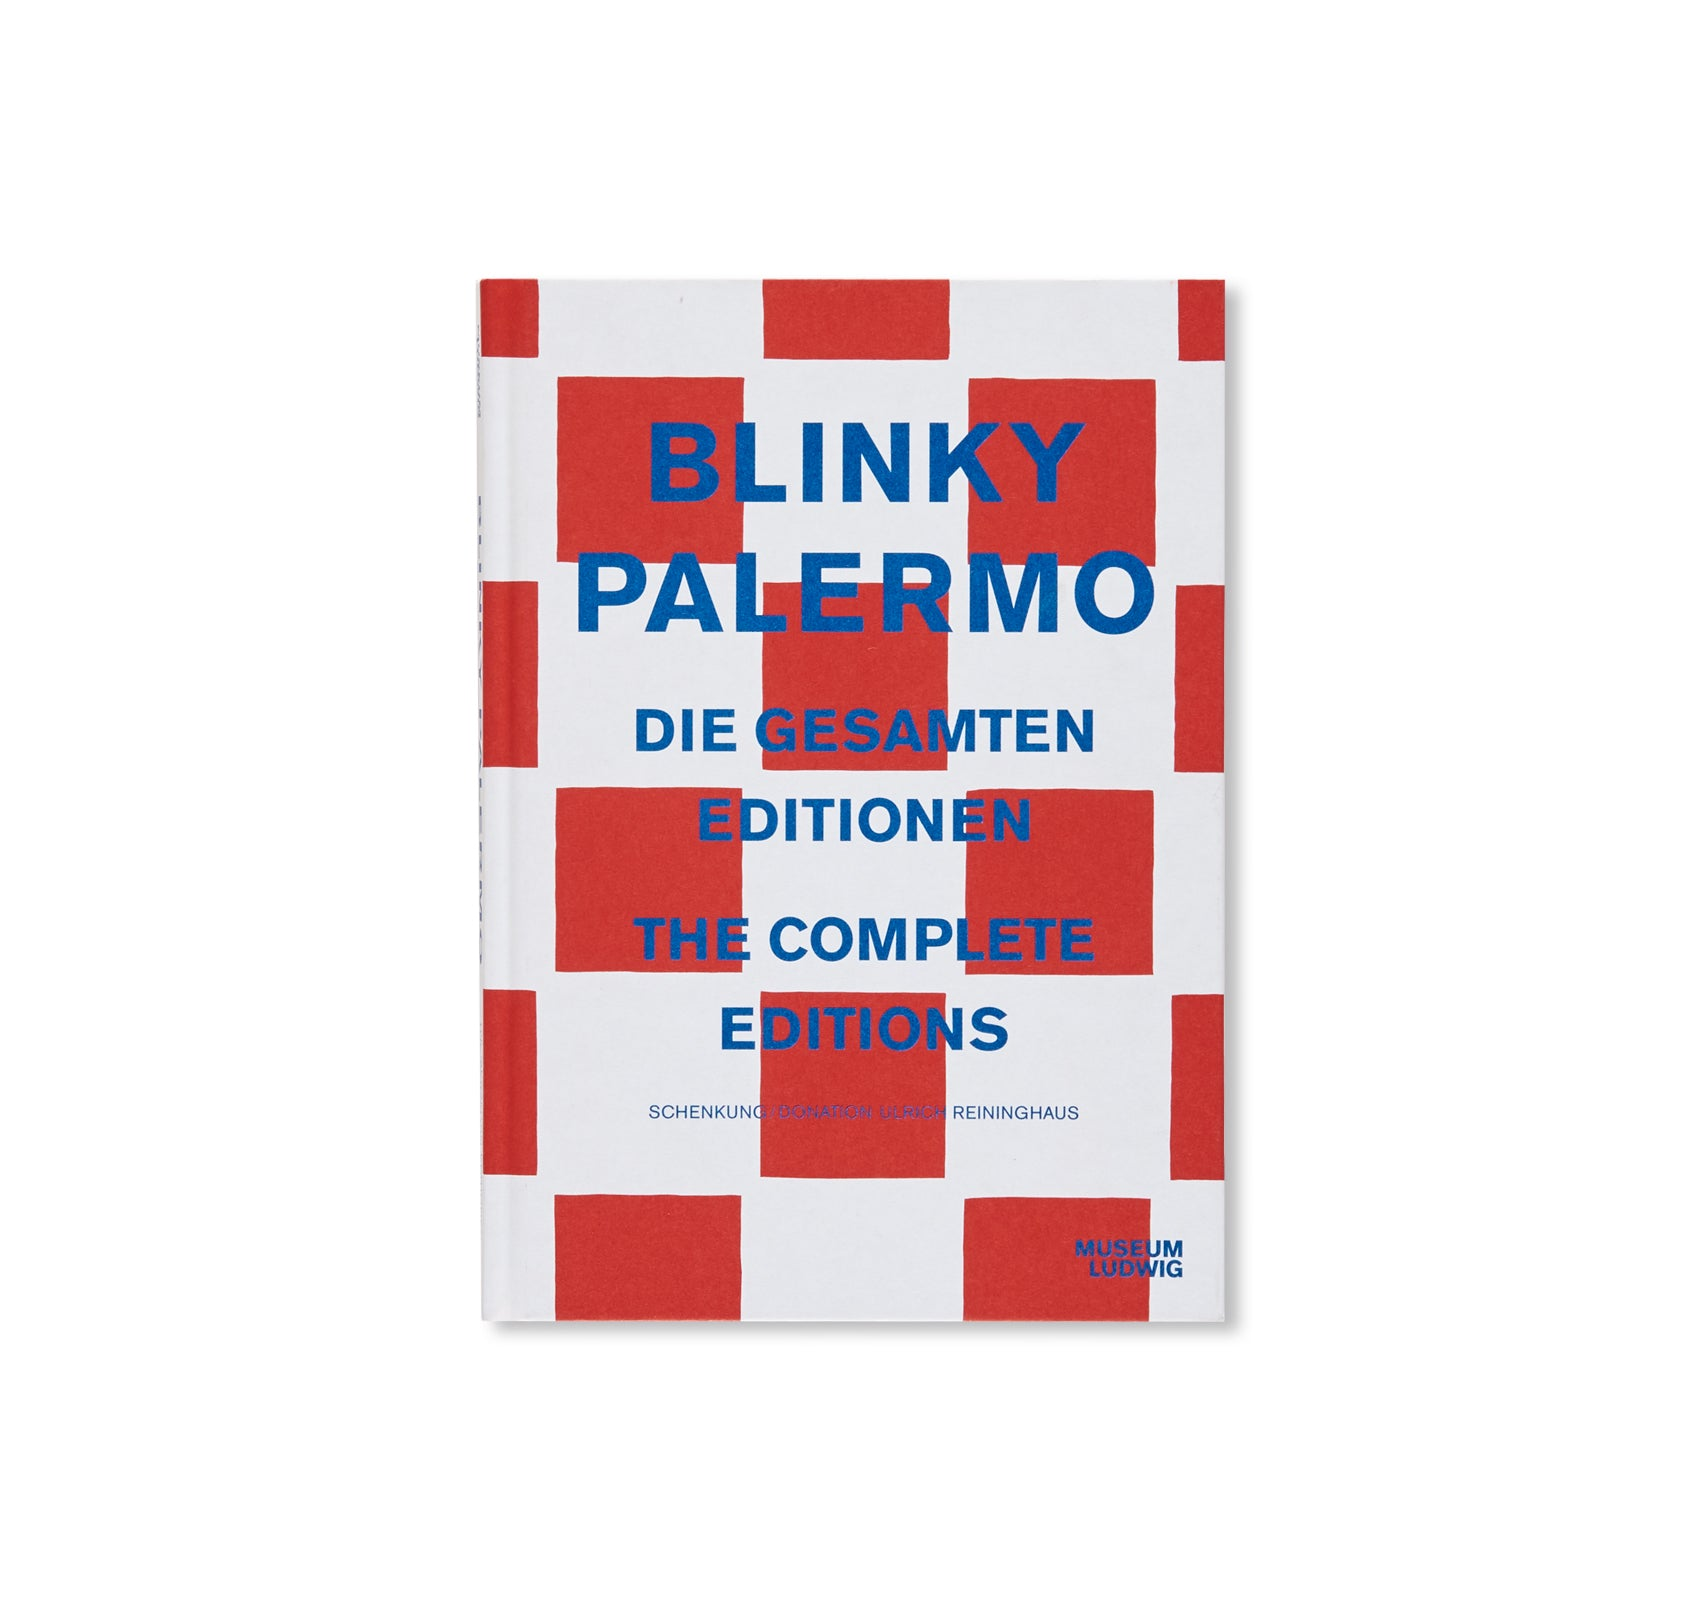 THE COMPLETE EDITIONS by Blinky Palermo